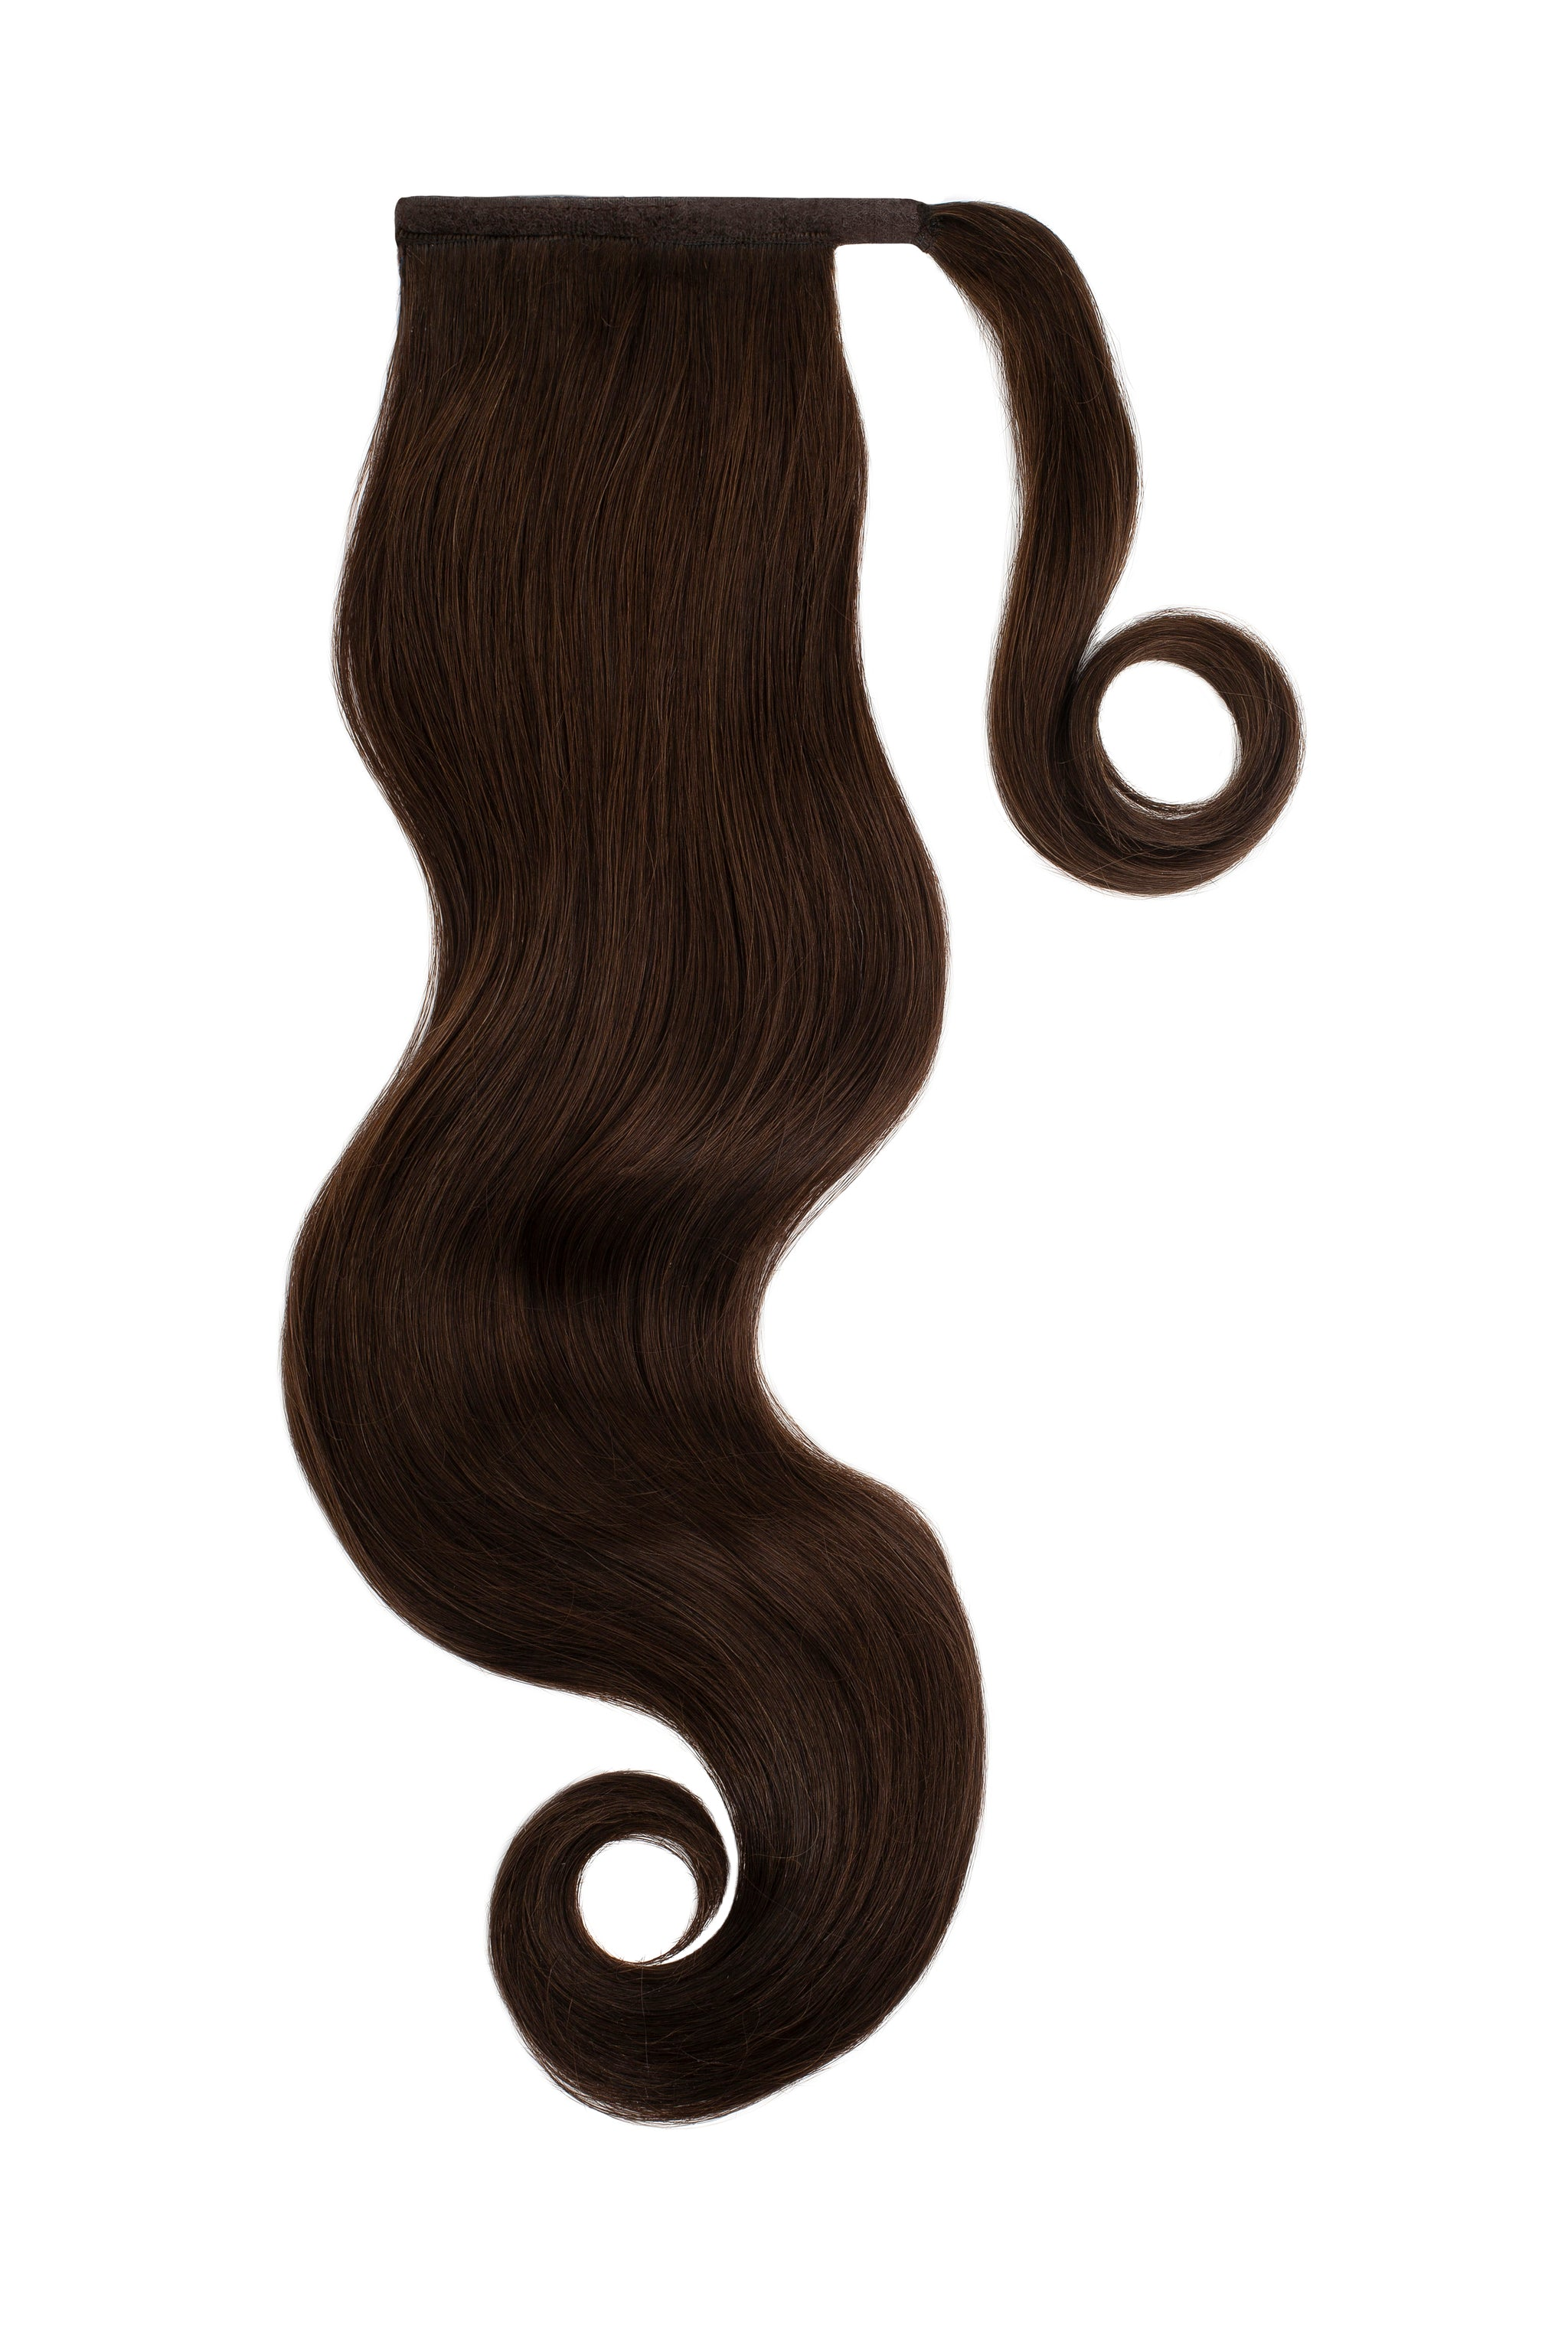 Dark Brown Clip In Ponytail Hair Extensions